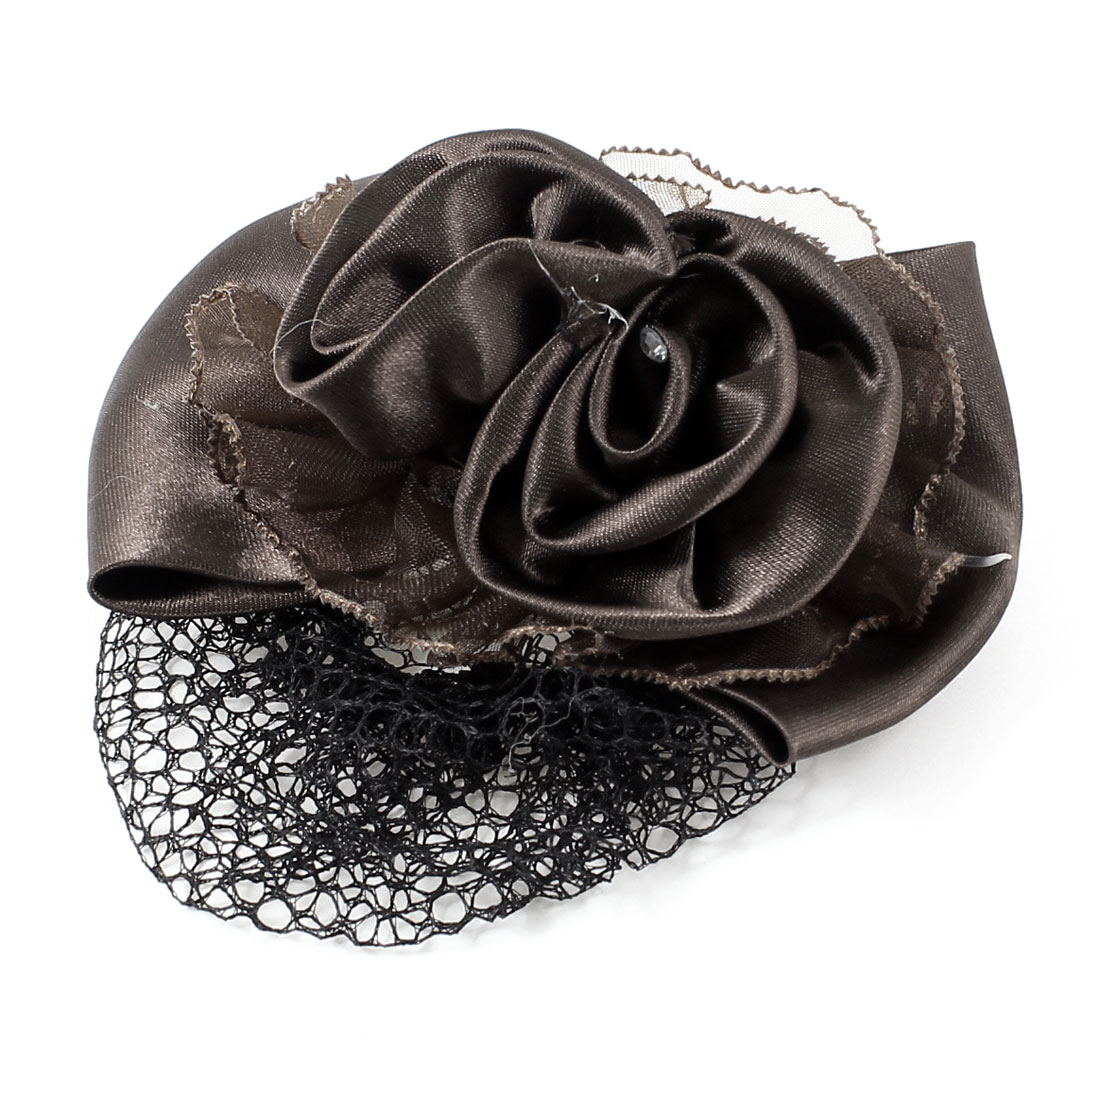 Bowknot Decor Snood Net Barrette French Hair Clip Bun Cover Dark Brown for Women